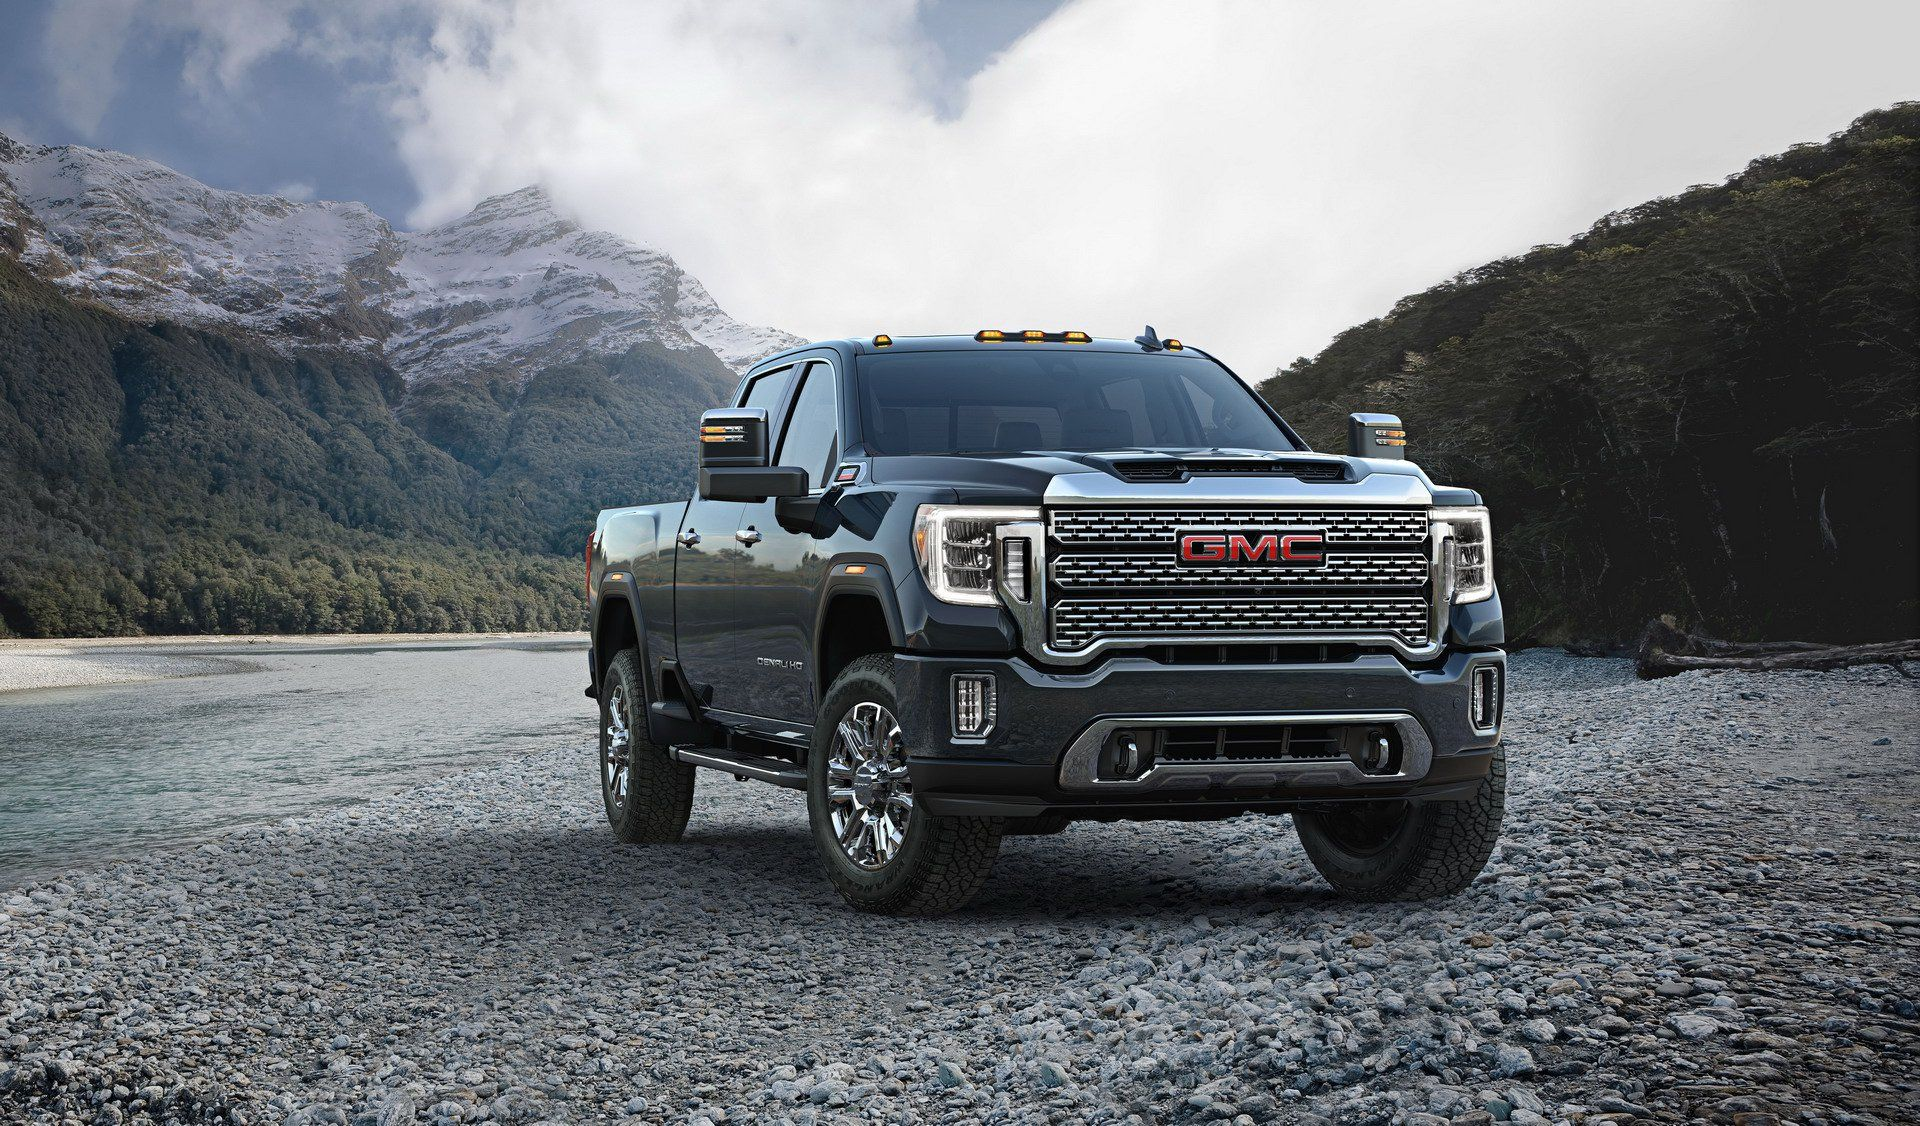 2020 Gmc Sierra Hd Has Brains Brawn And 15 Cameras That Let You